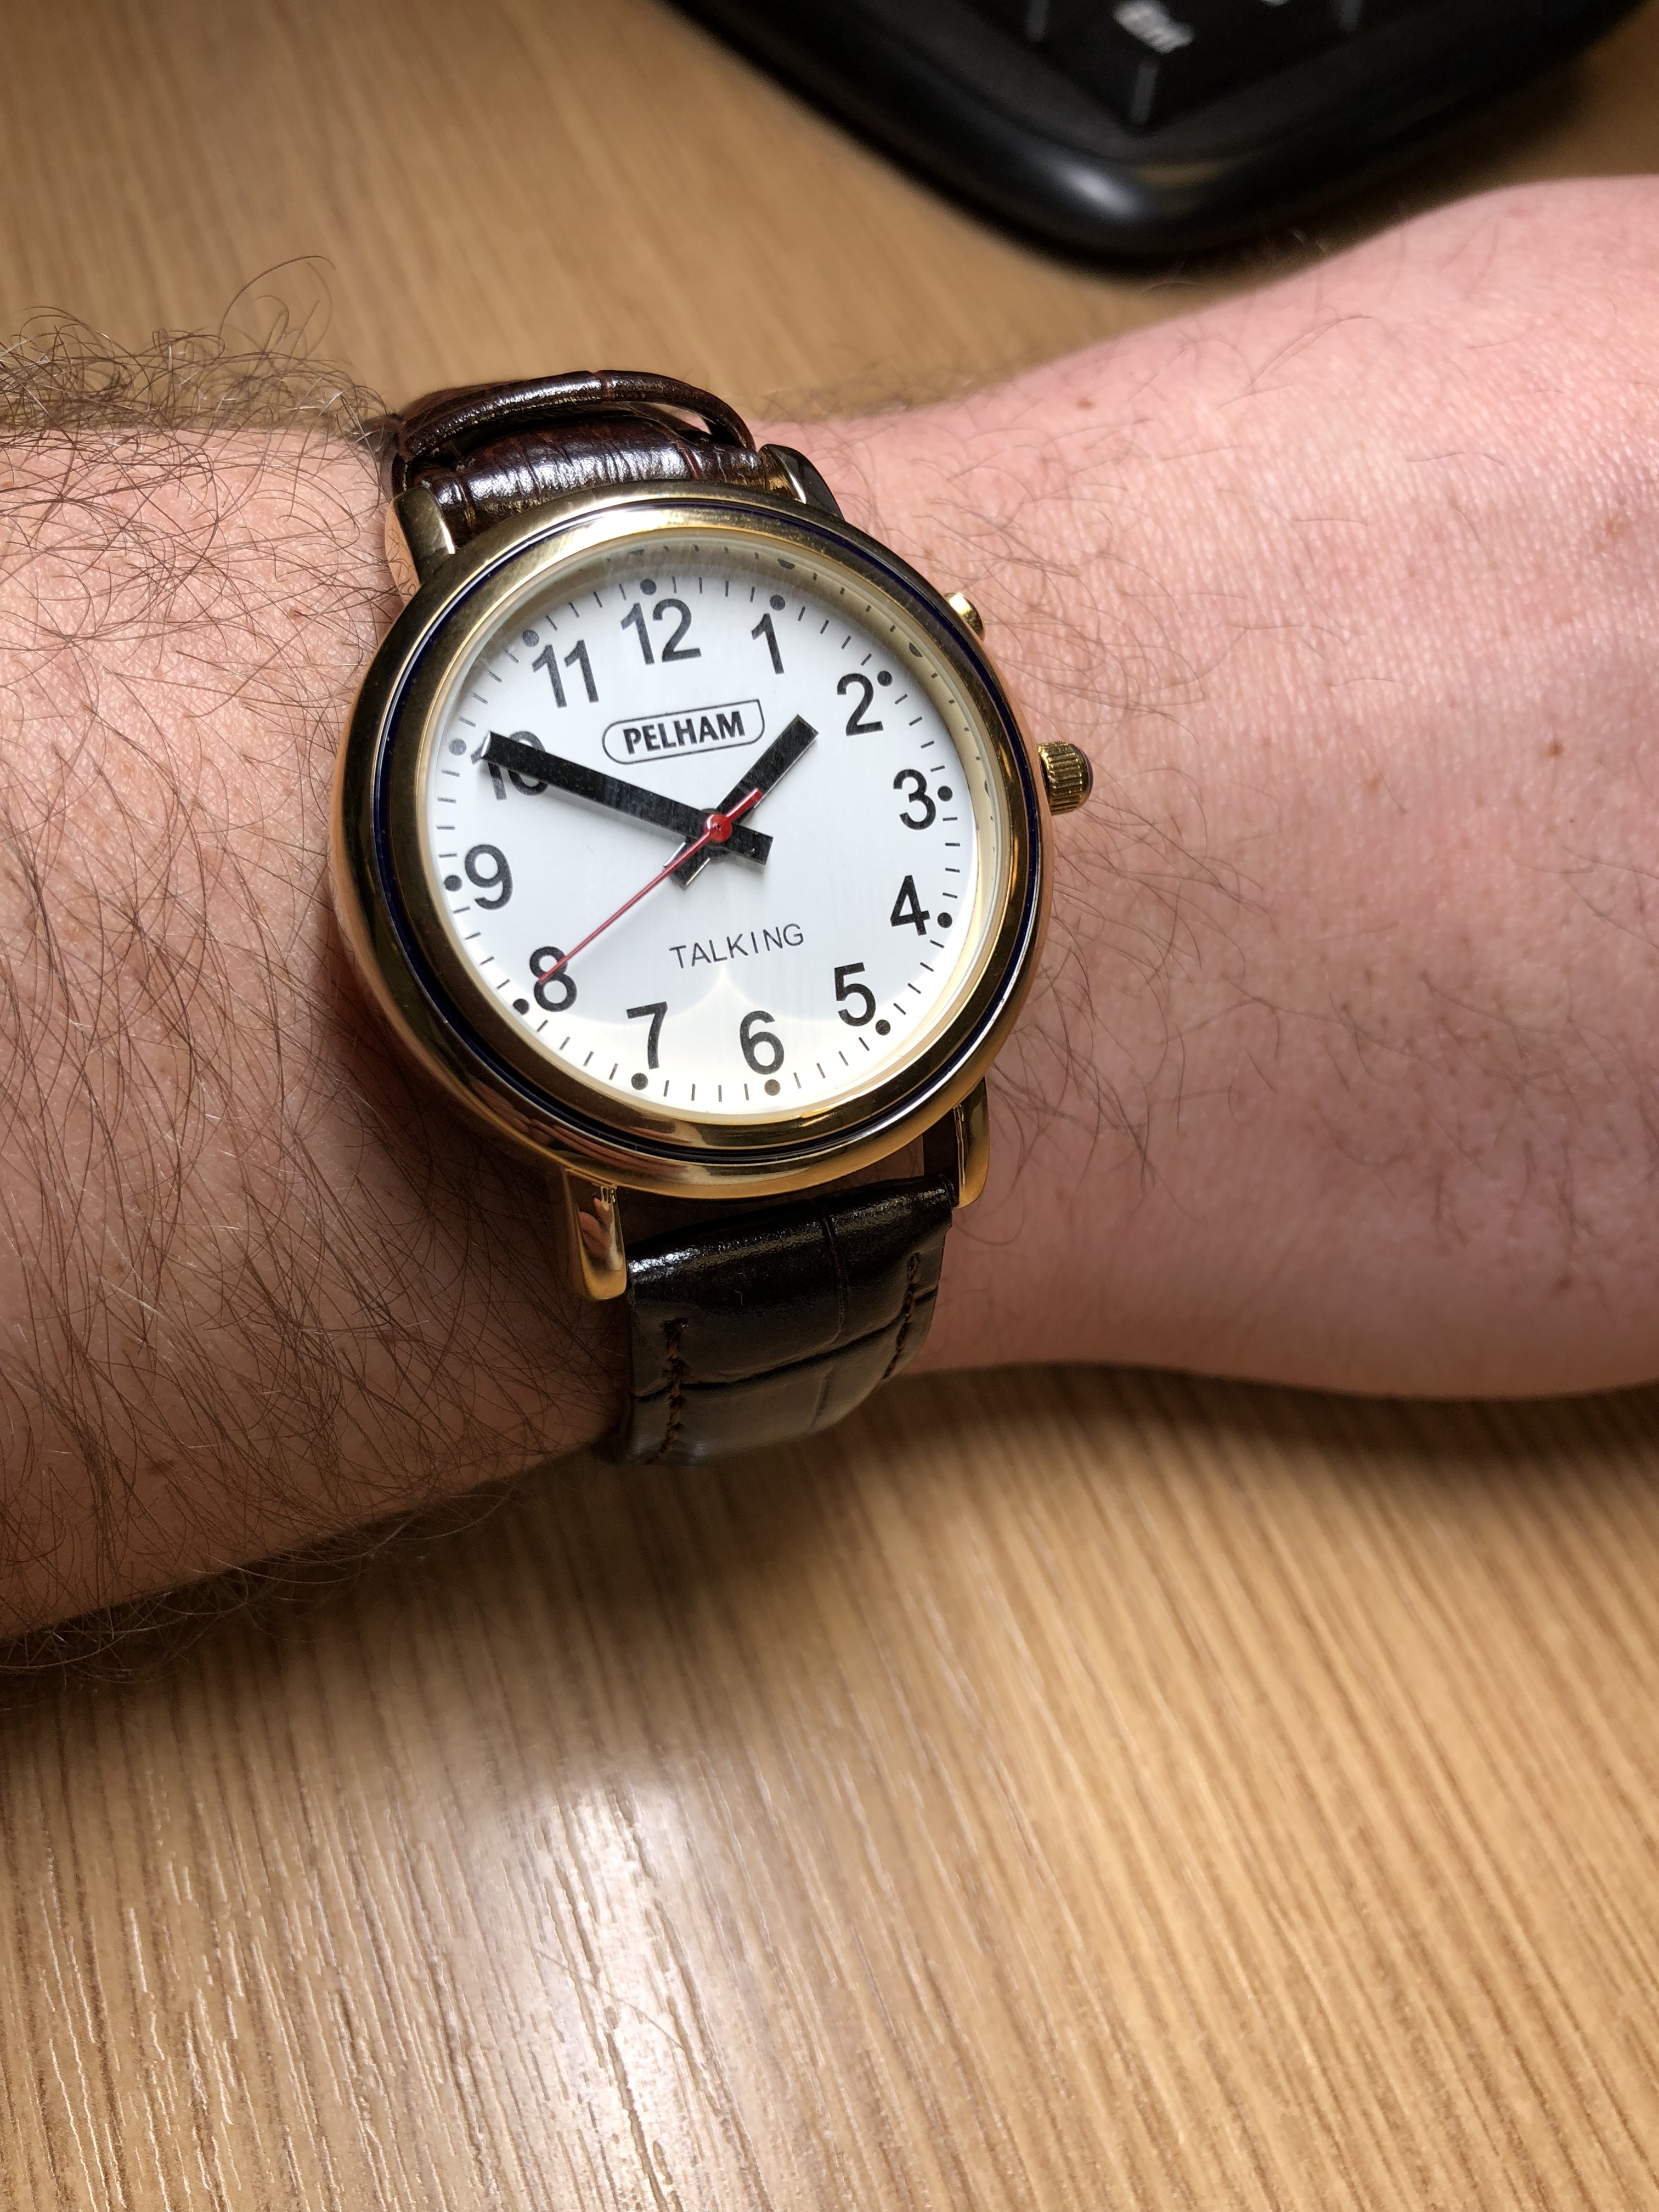 and guy cool service broken minute so make a watches blinds off calibre revue blind gift watch i would mine has thought hand img is friend for this hardly of the running